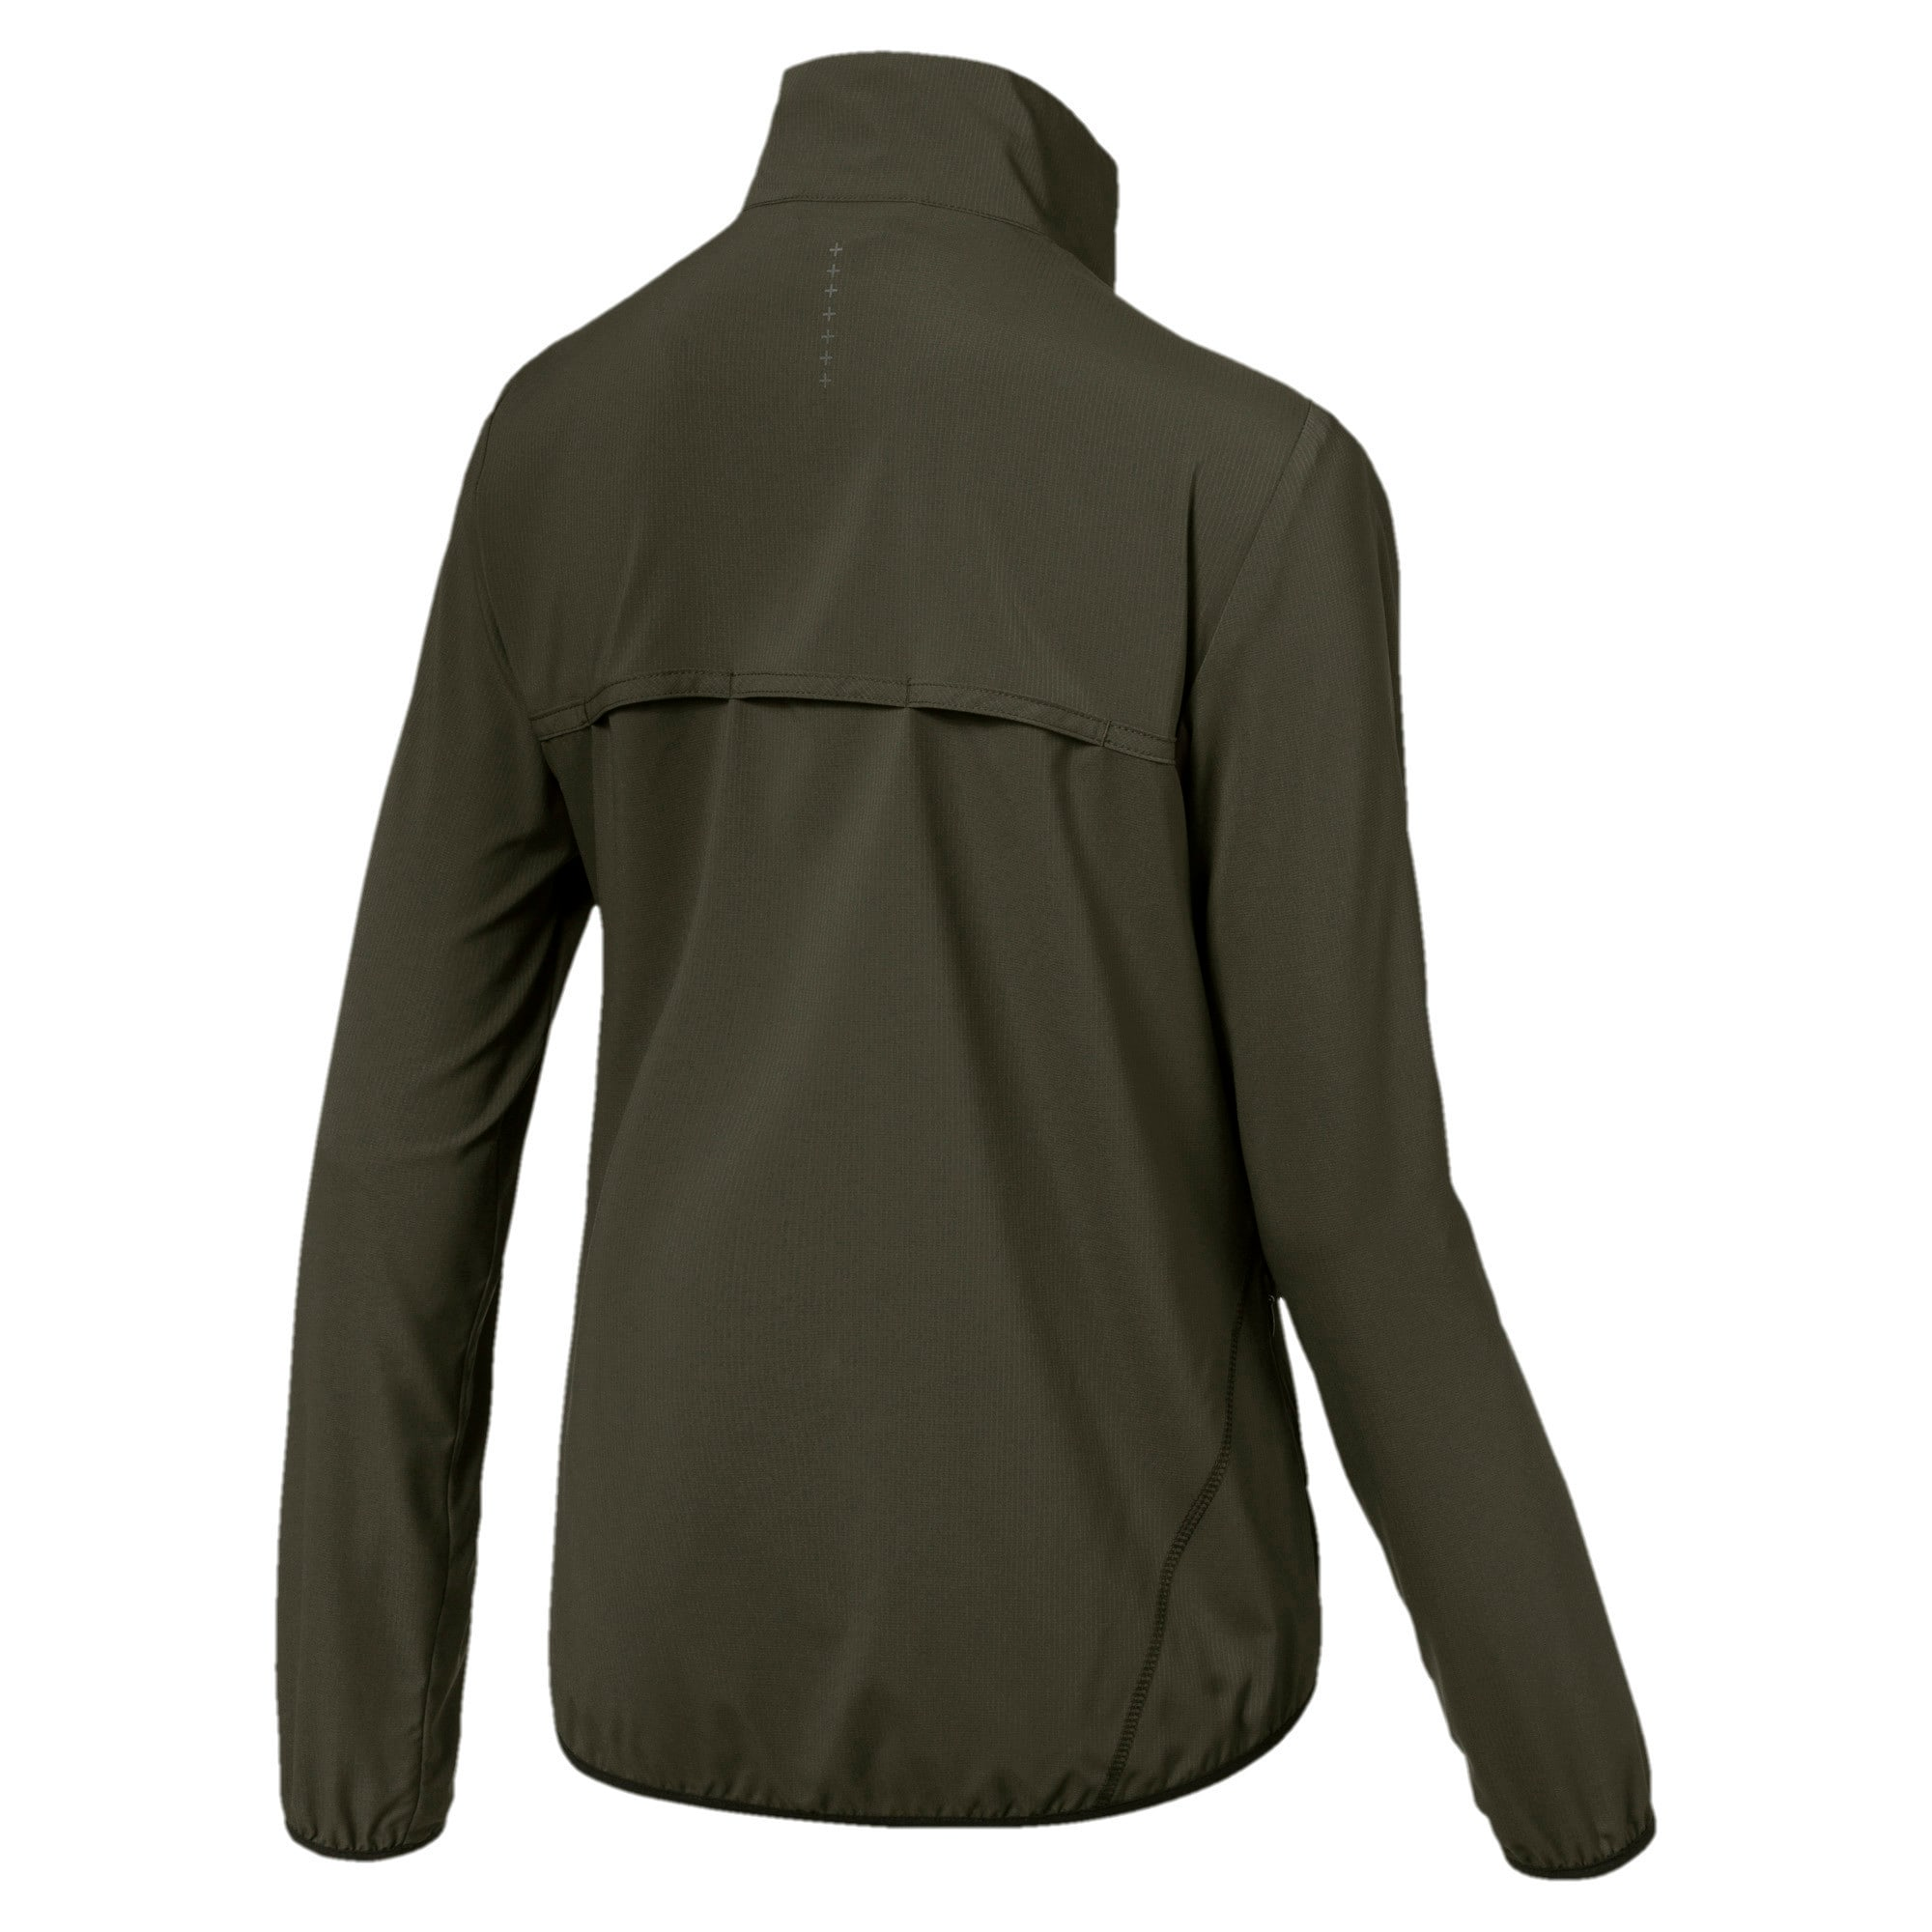 Thumbnail 4 of IGNITE Zip-Up Women's Running Wind Jacket, Forest Night-Black-Orchid, medium-IND